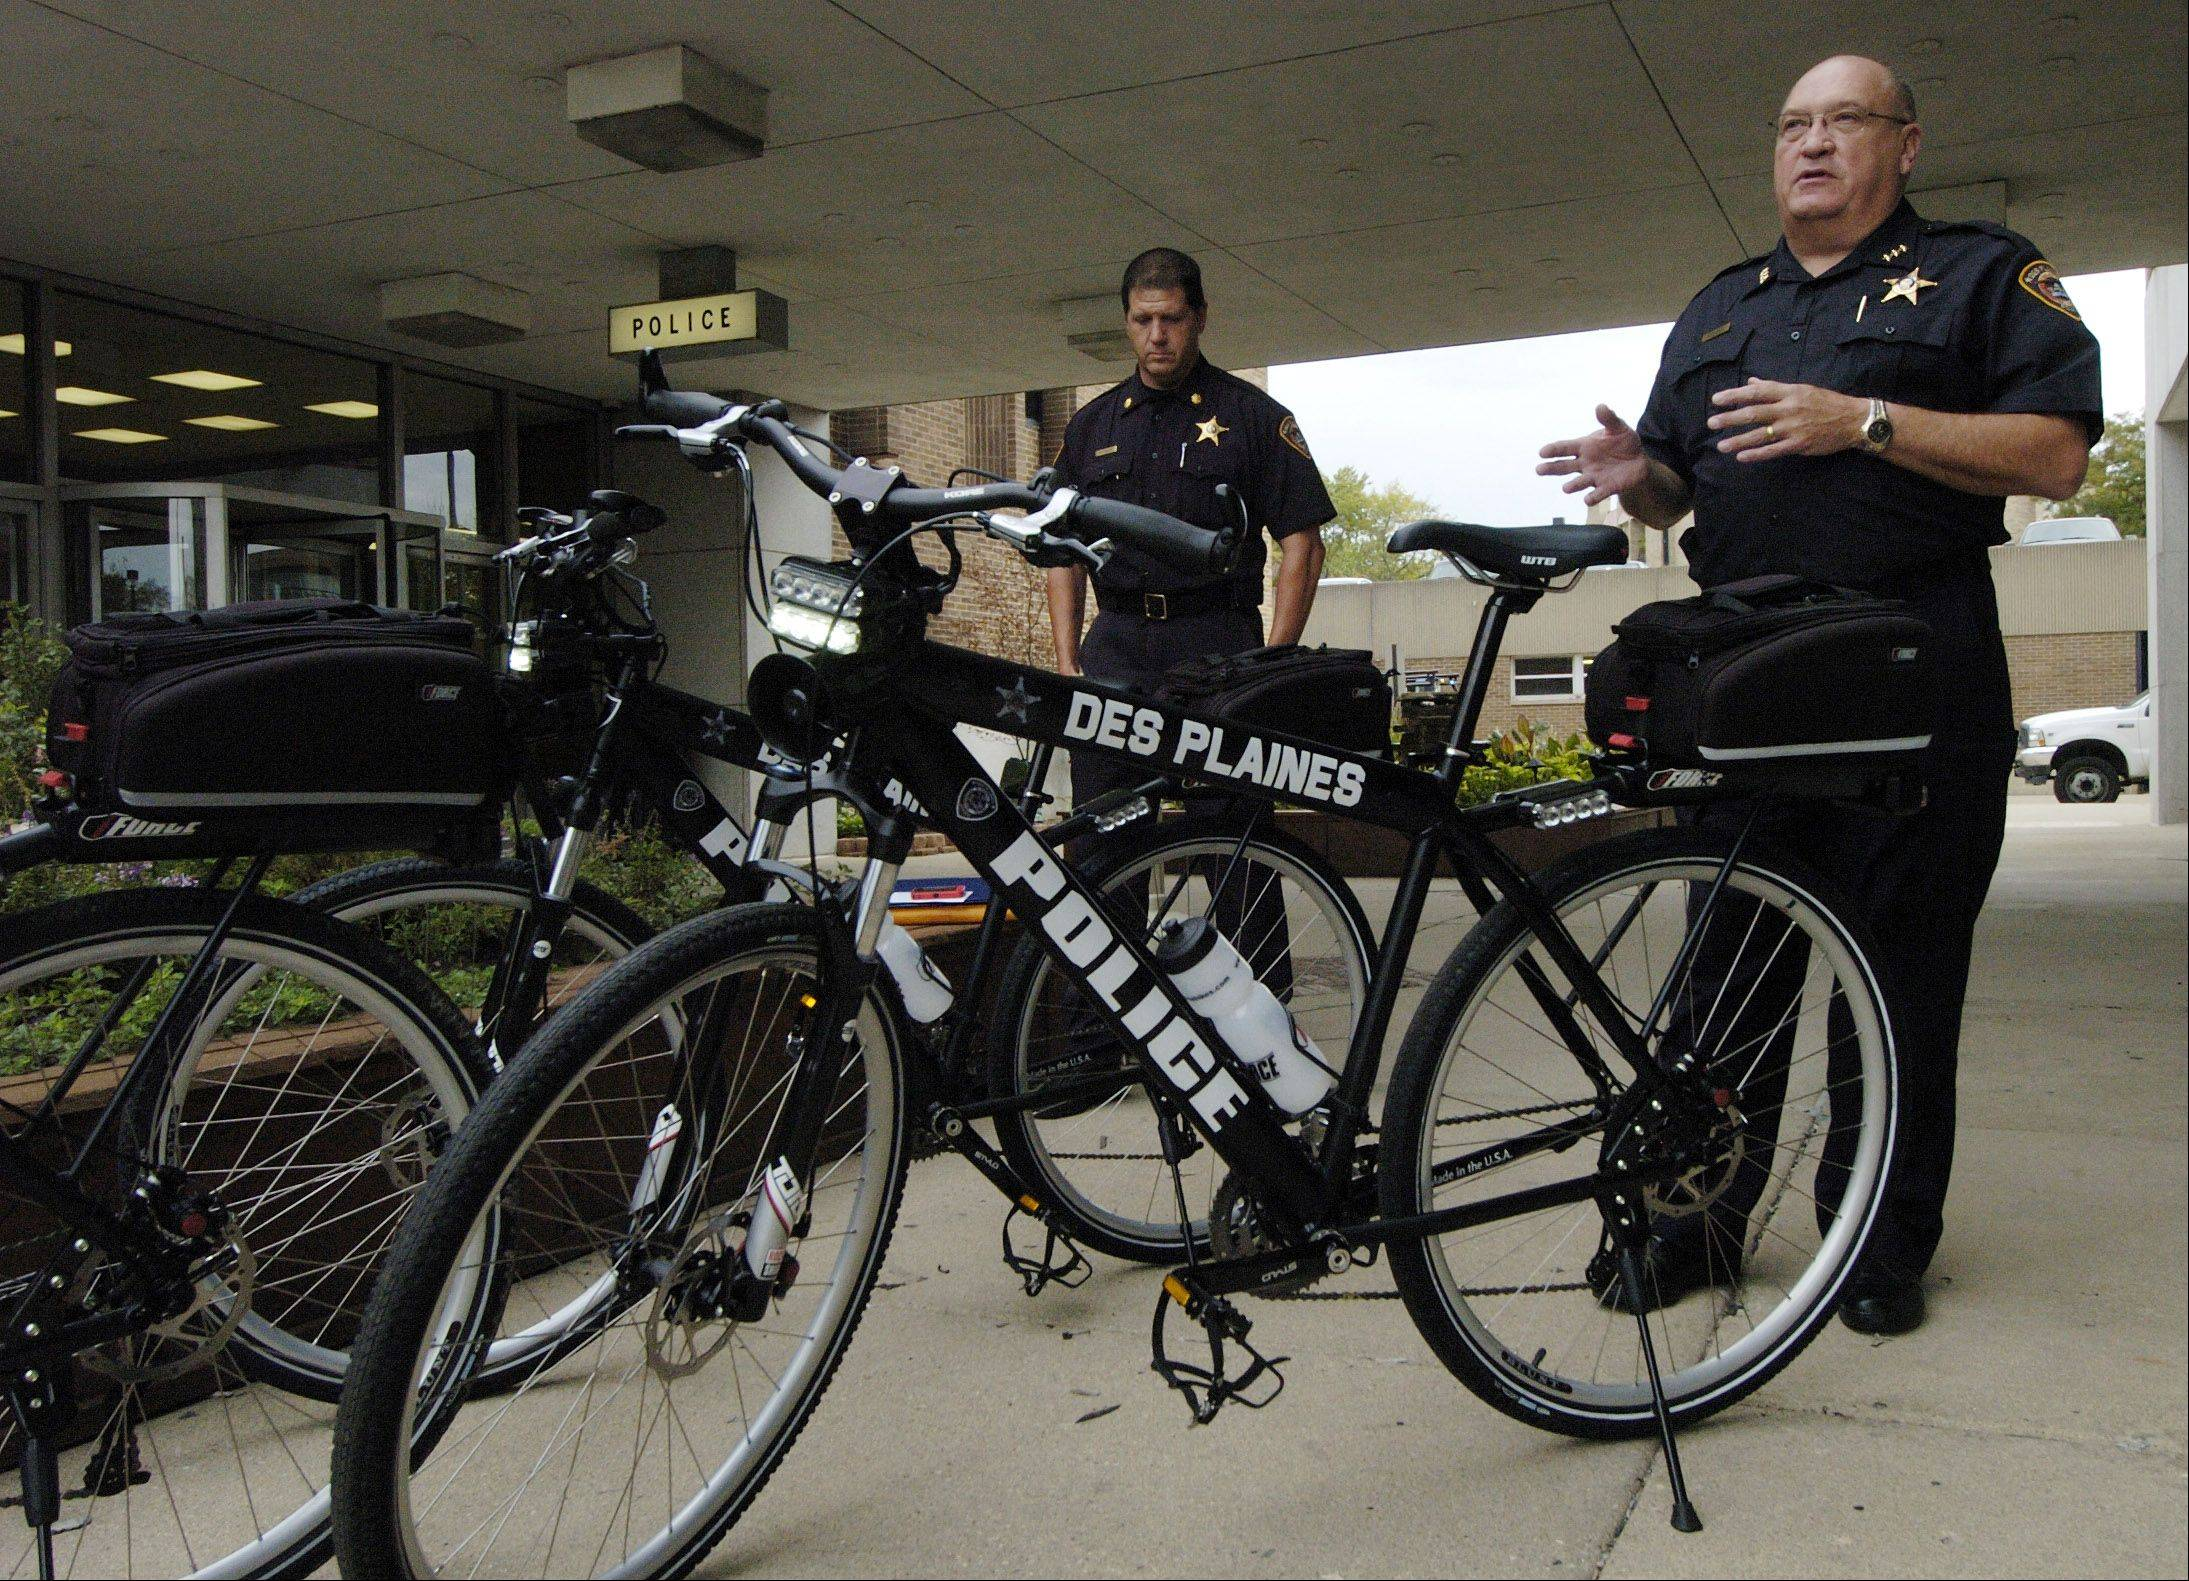 Police Chief William Kushner, right, and Cmdr. Dan Niemann talk about the Des Plaines Police Department's new iForce bicycles outside the police station Friday.